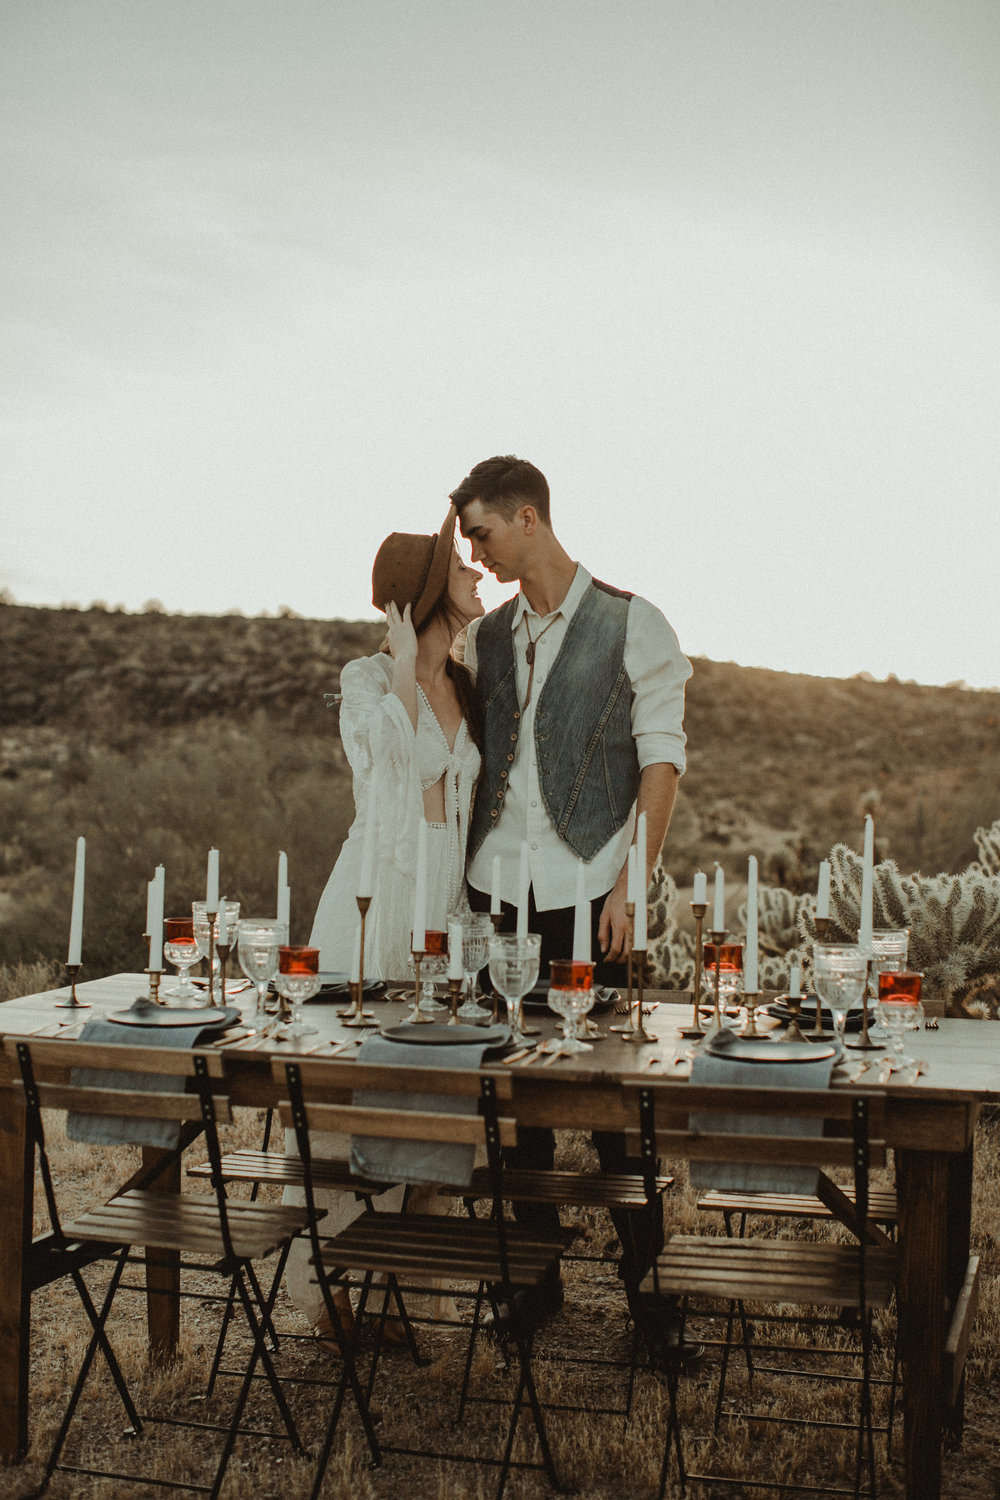 Desert Boho Vagabond Inspiration Shoot with Tremaine Ranch, From the daisies, Noir Floral, Phoenix, Arizona - Wedding & Event Rentals, Vintage, Specialty134.jpg